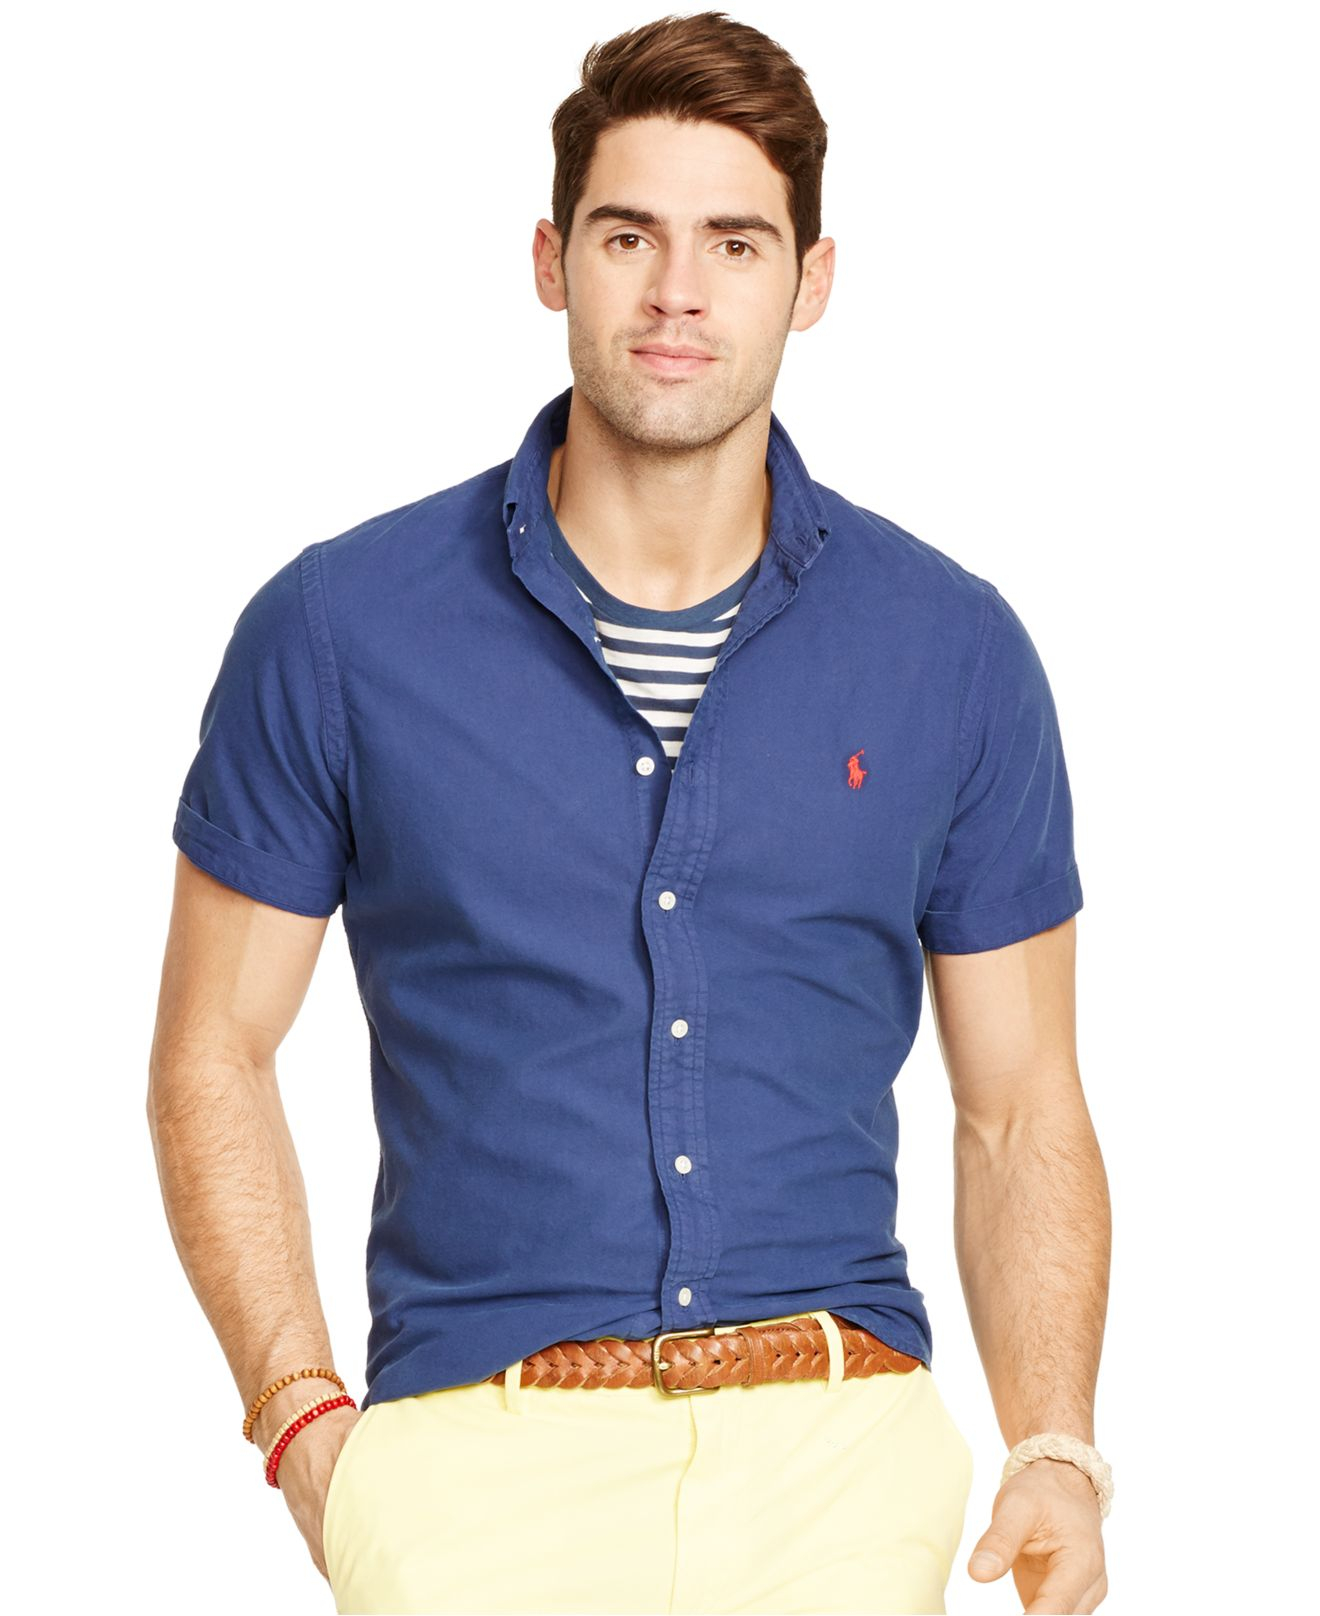 Lyst - Polo Ralph Lauren Short-sleeved Oxford Shirt in Blue for Men 8931df552